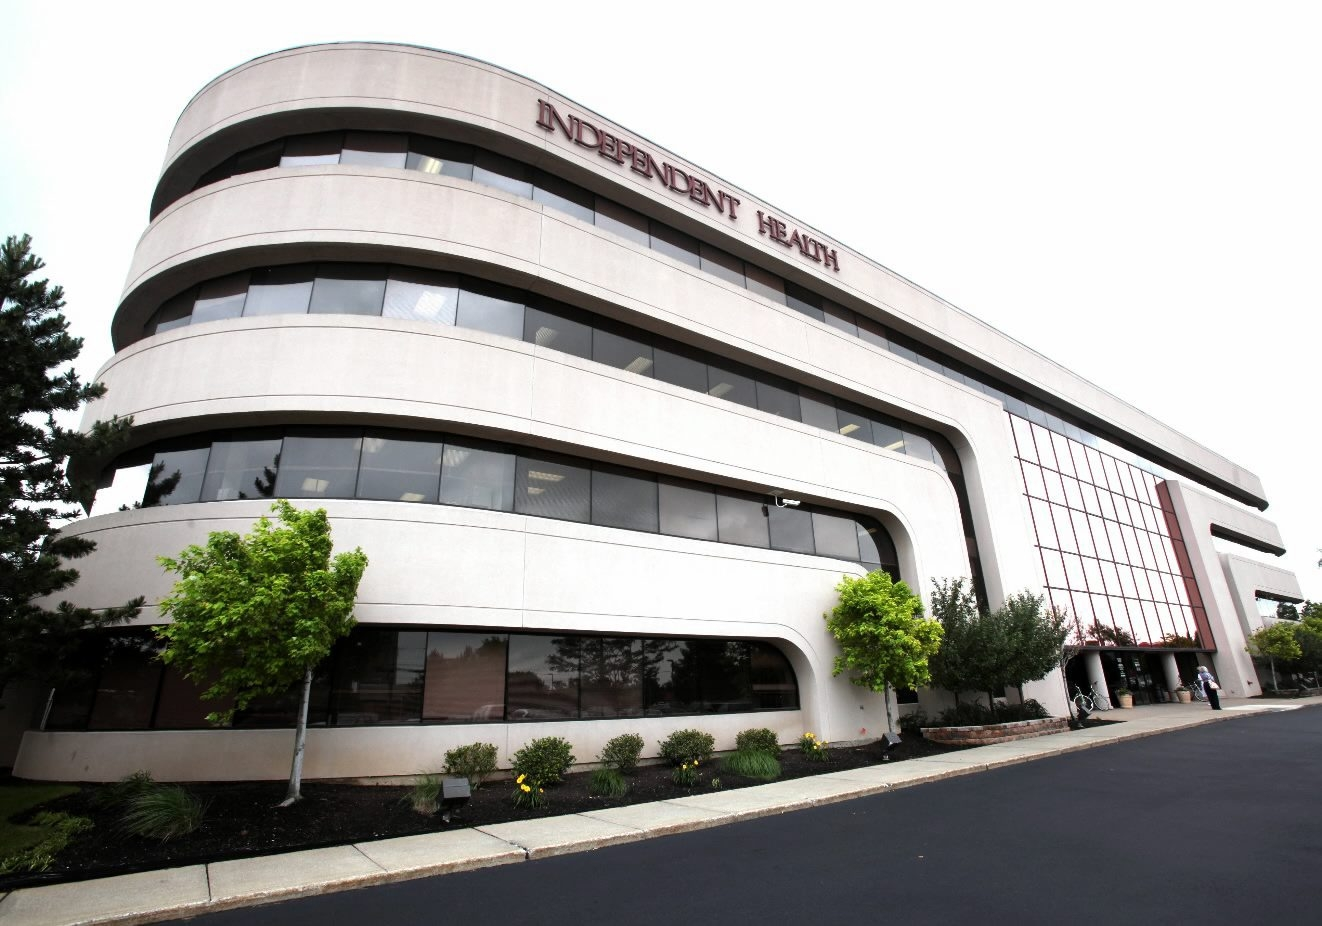 Amherst-based Independent Health reported  an operating loss of $43.9 million for 2015. (News file photo)